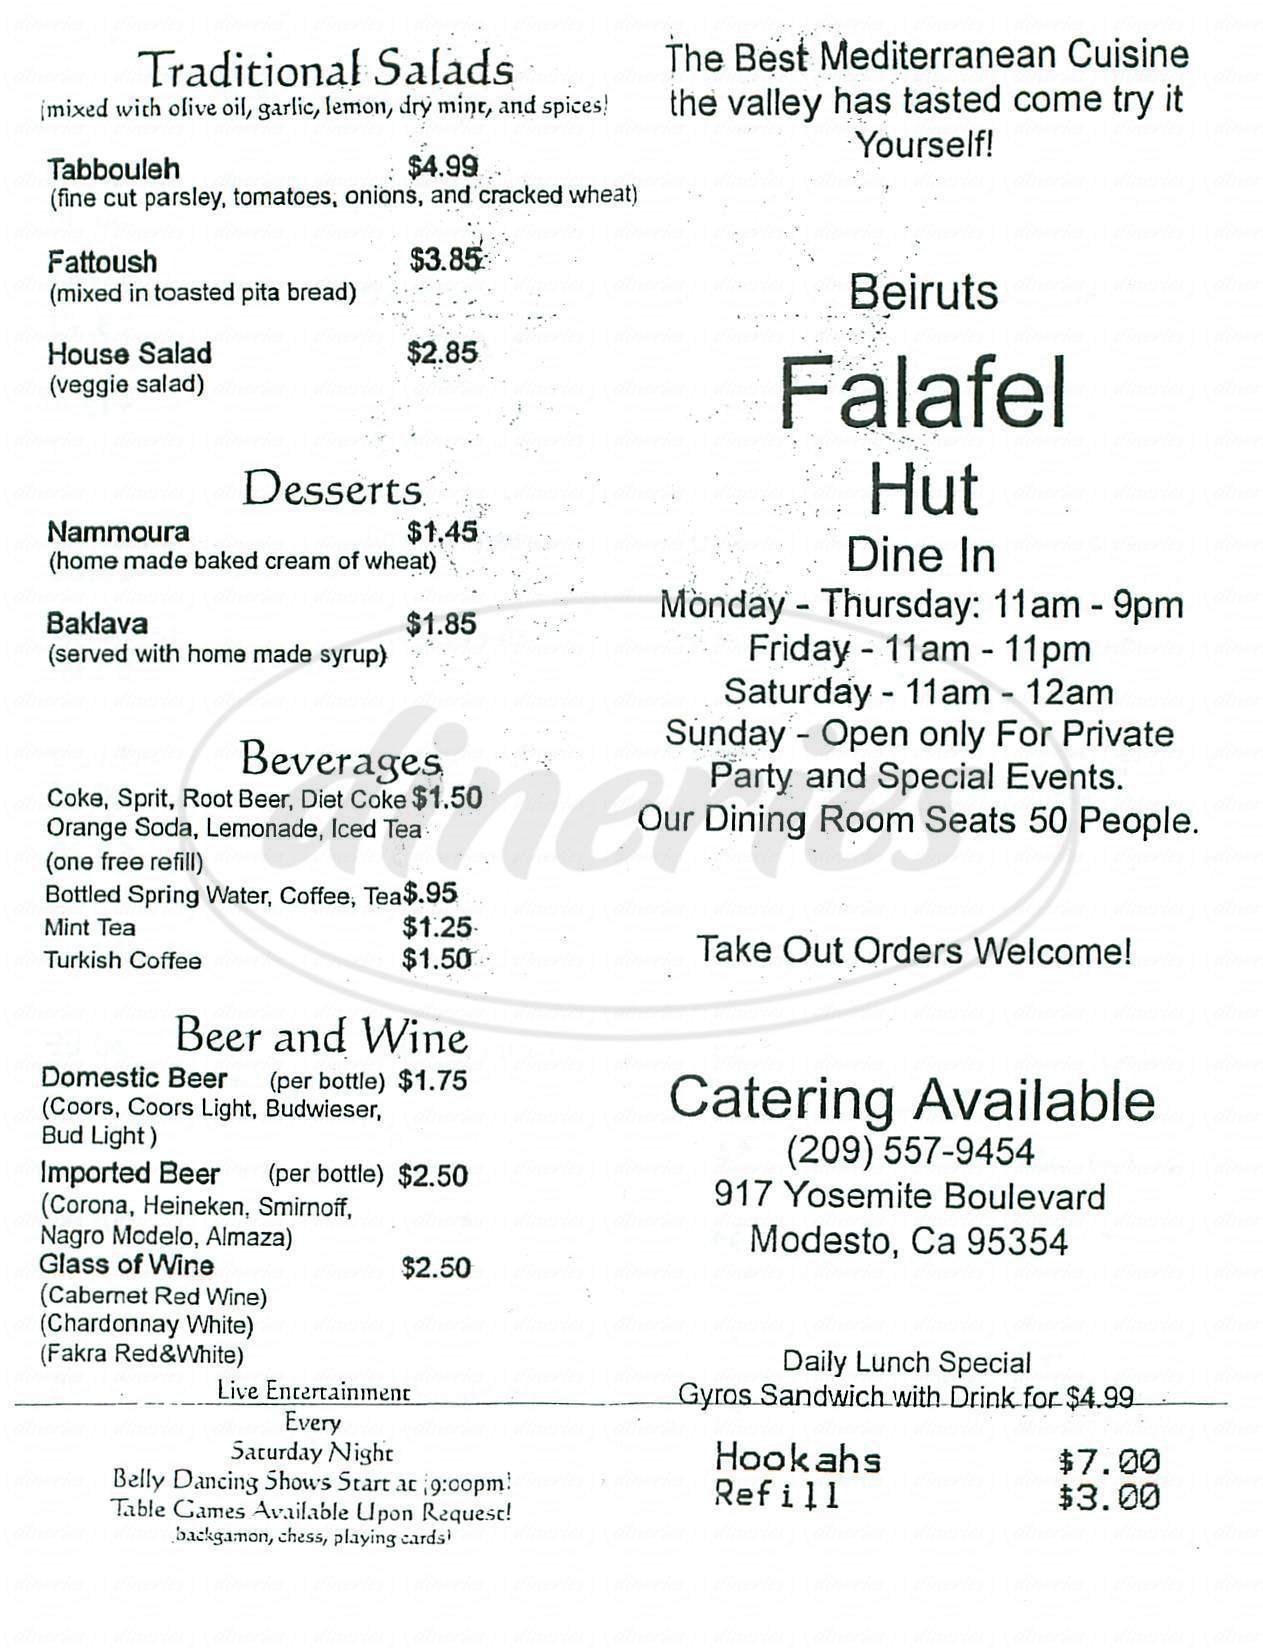 menu for Beiruts Falafel Hut